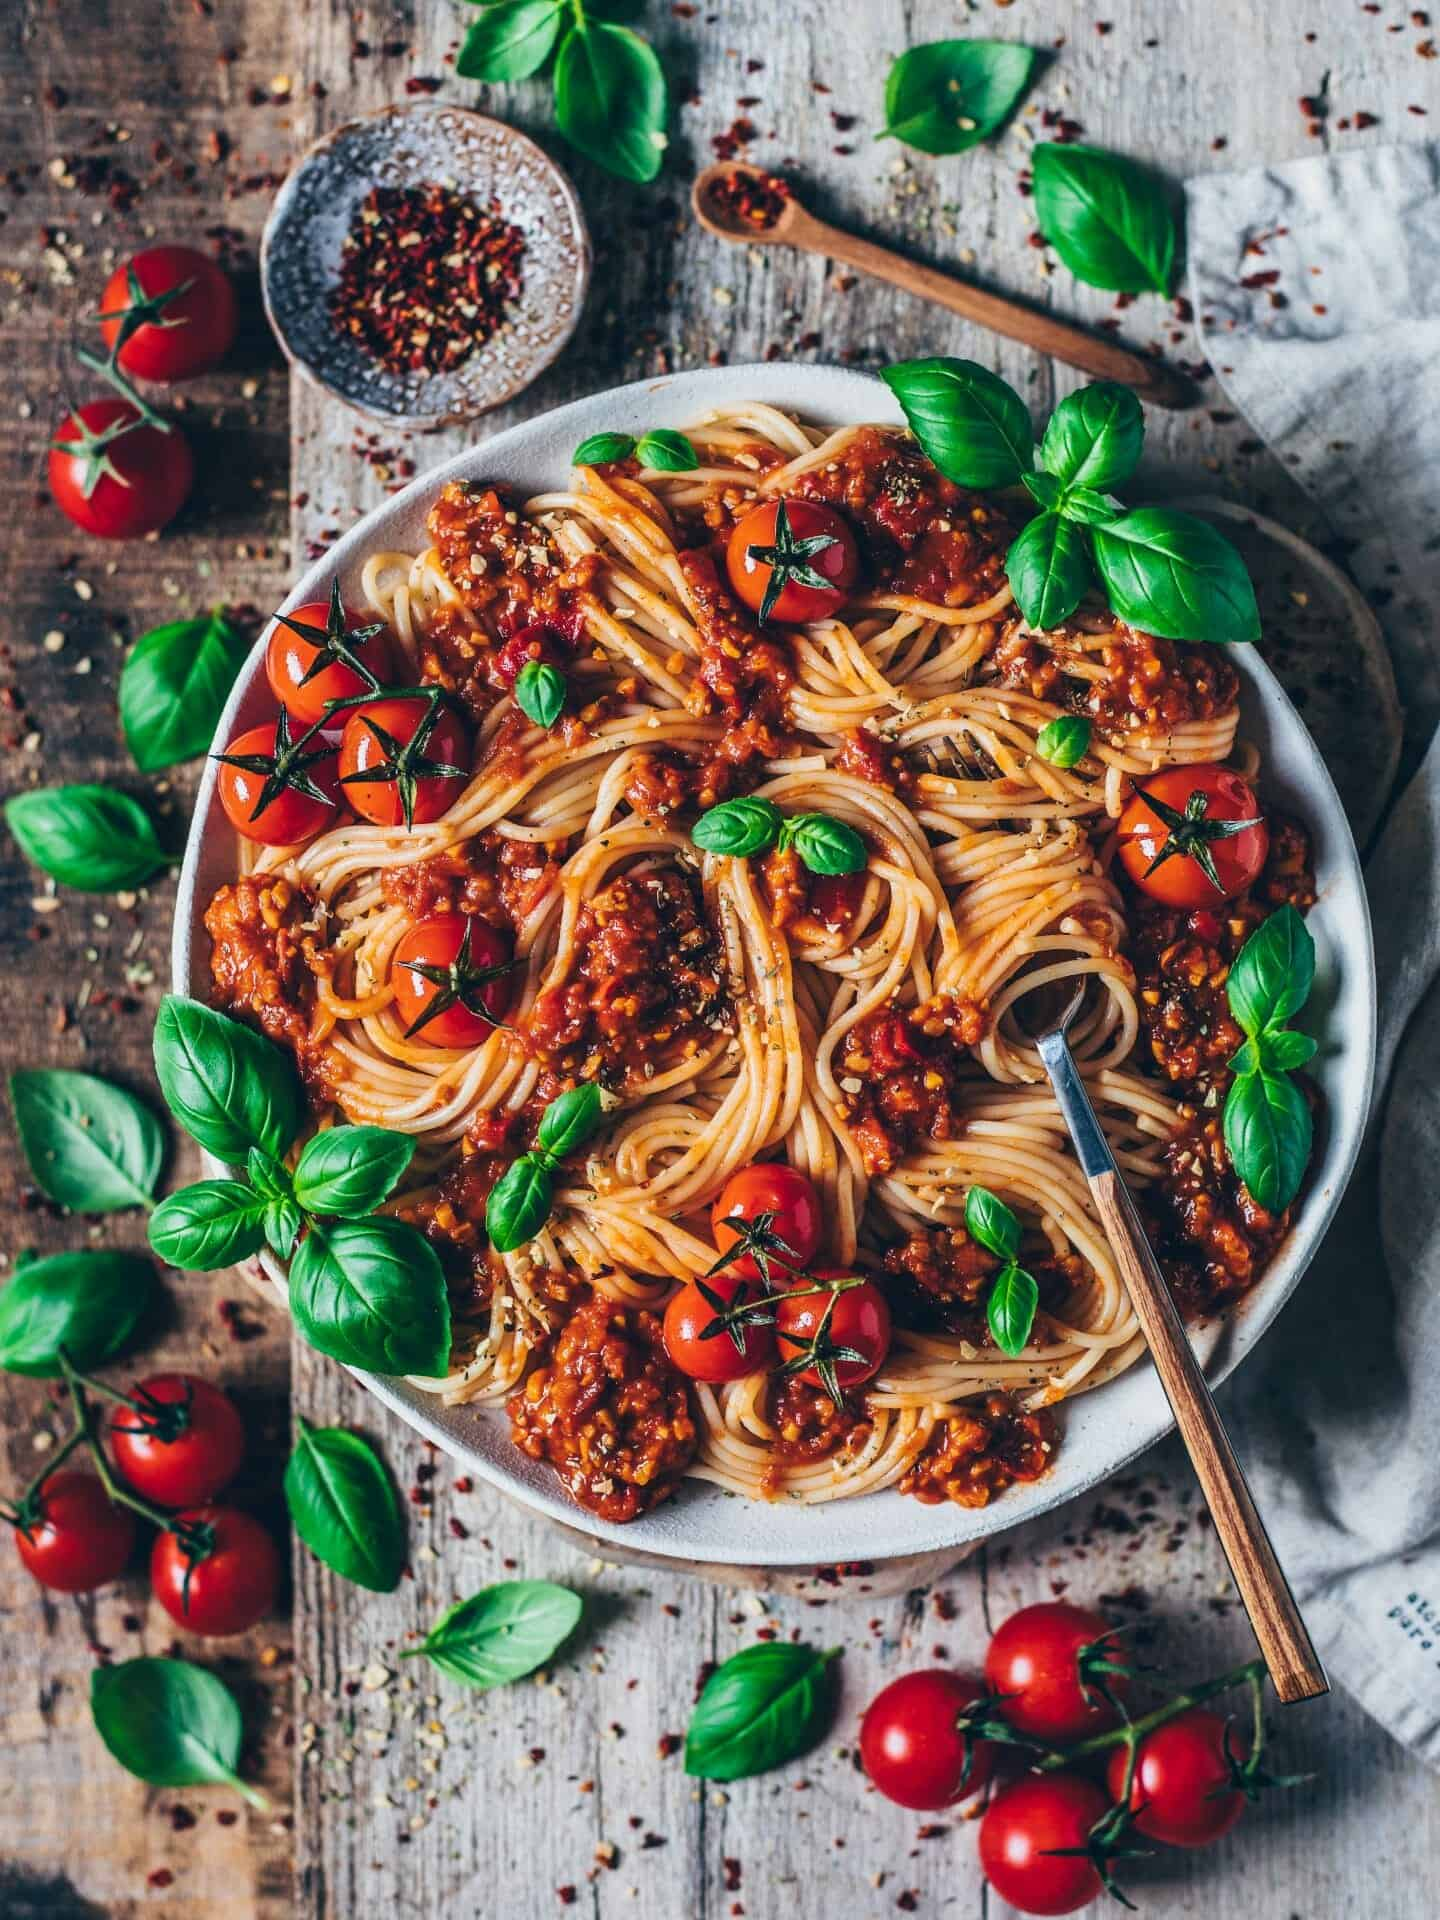 spaghetti noodles with bolognese sauce tomatoes and basil